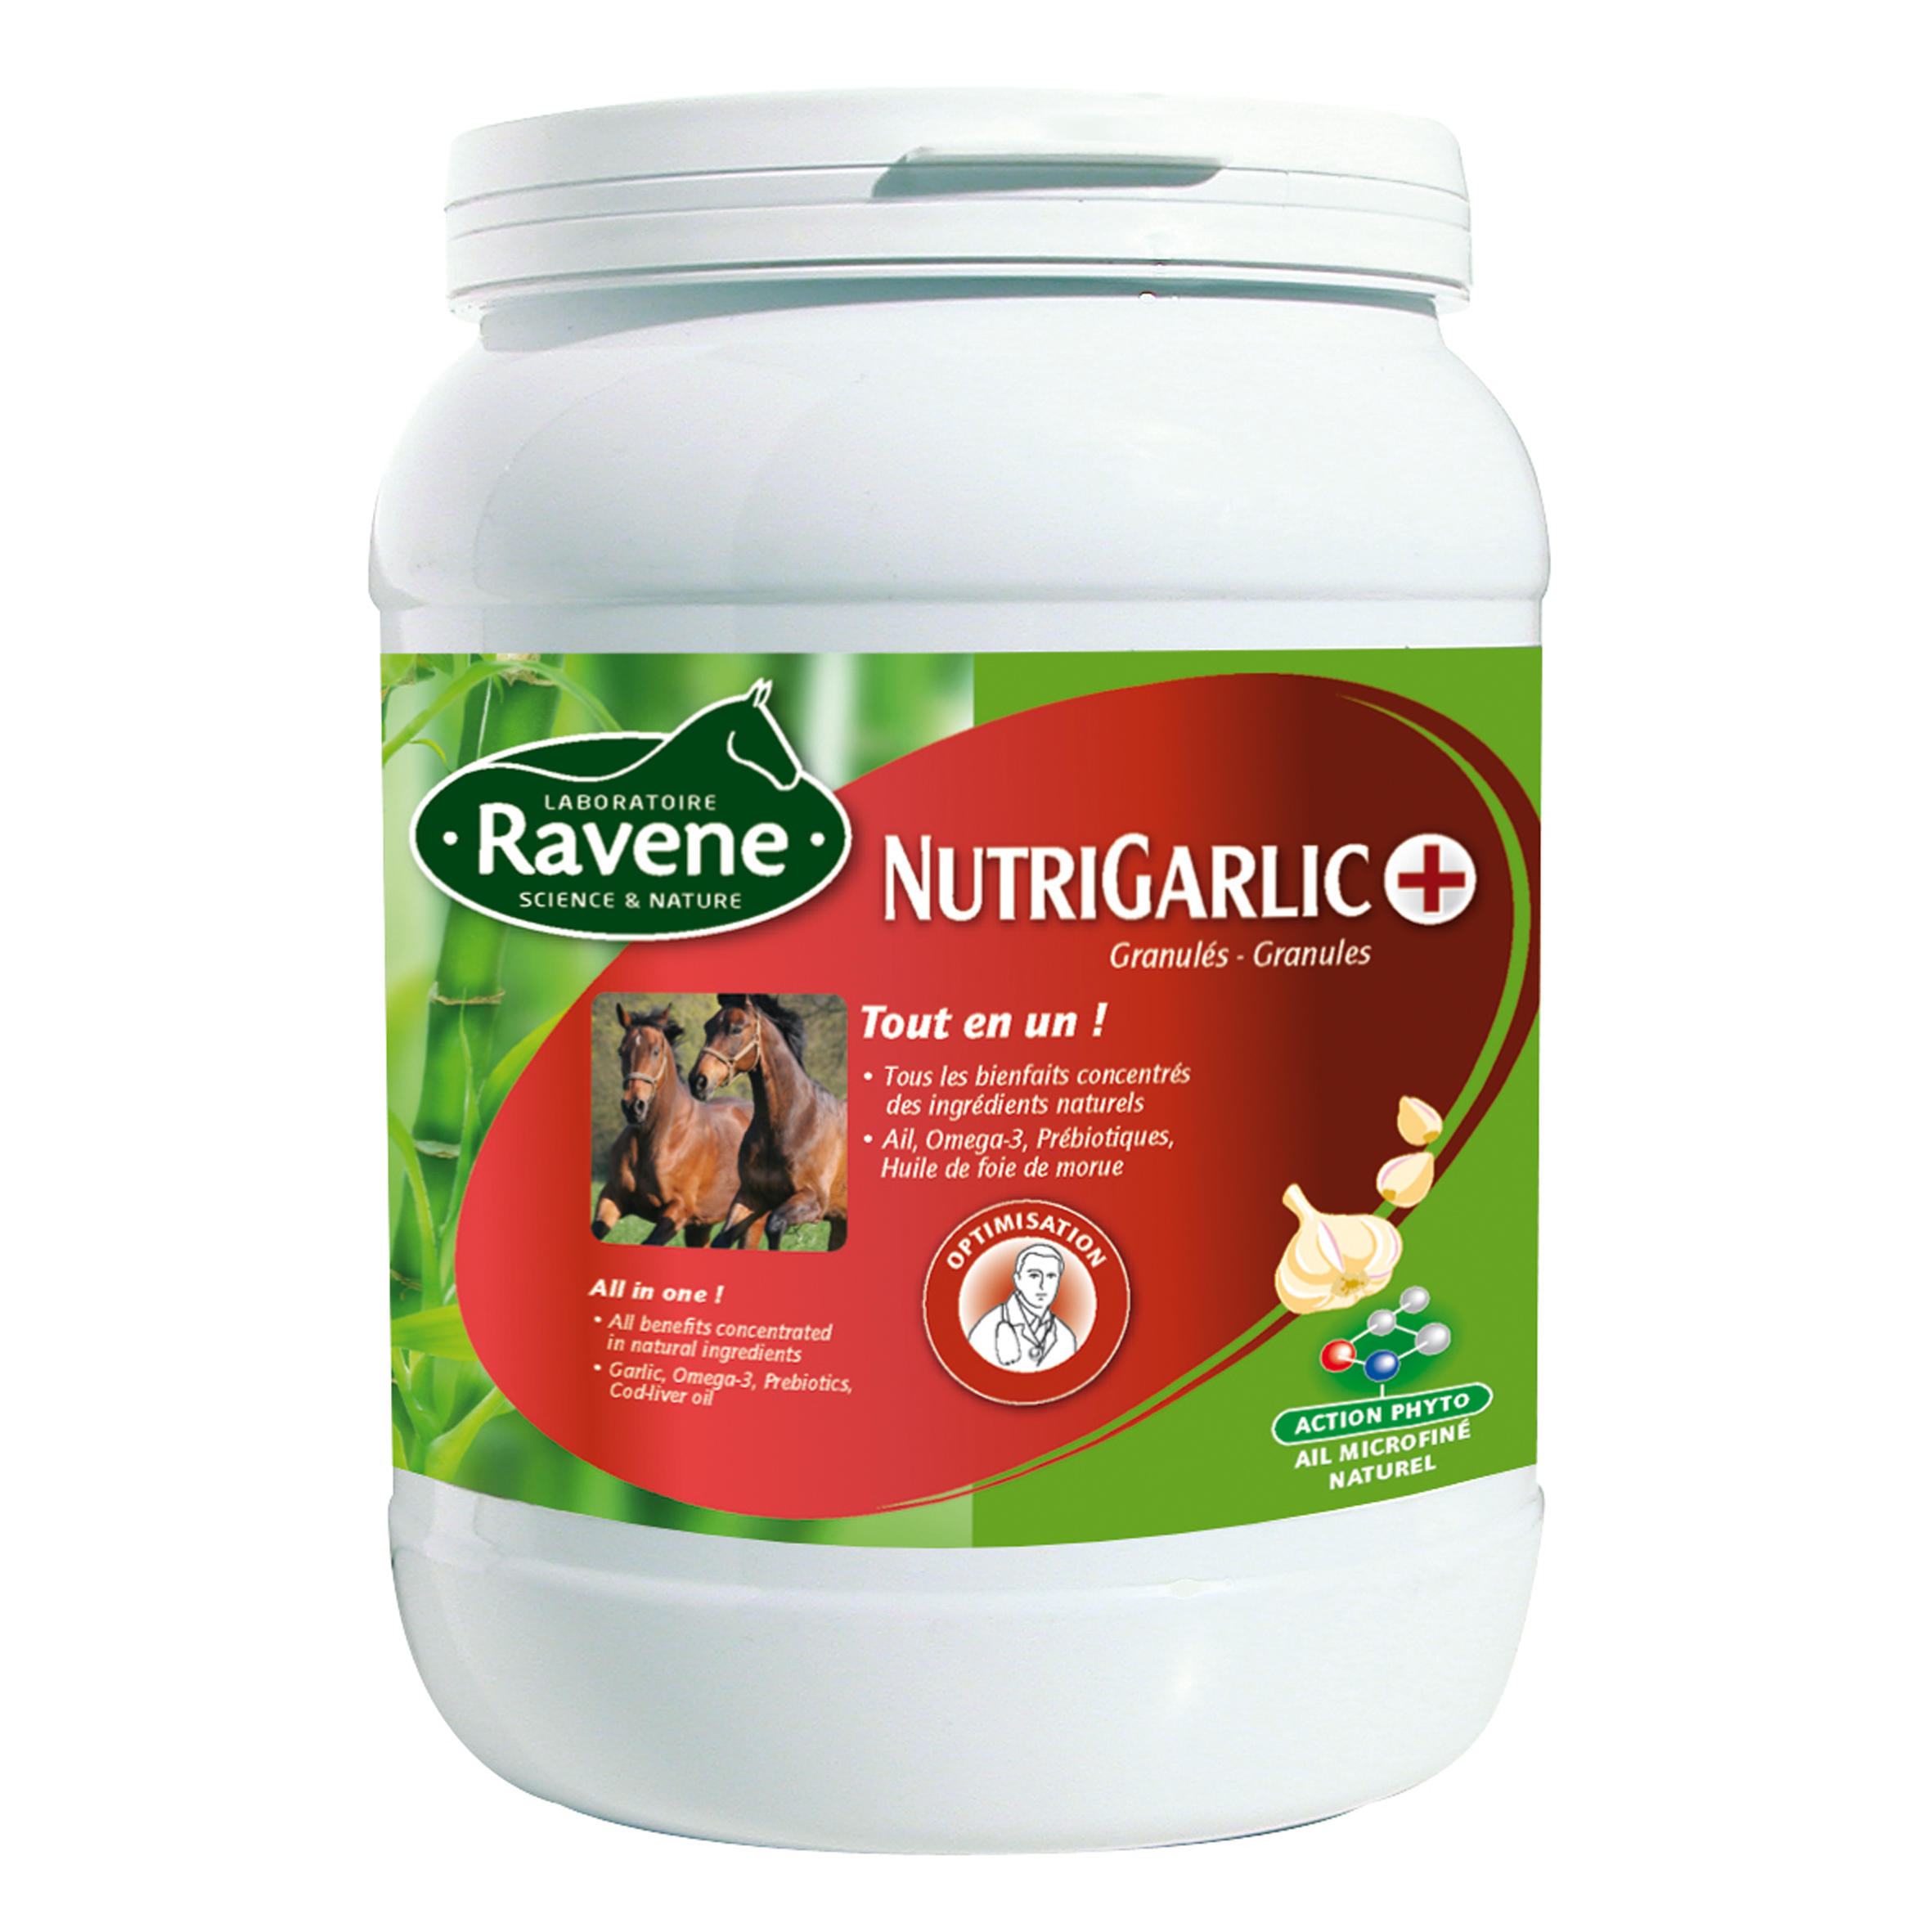 Nutrigarlic 900g imagine produs